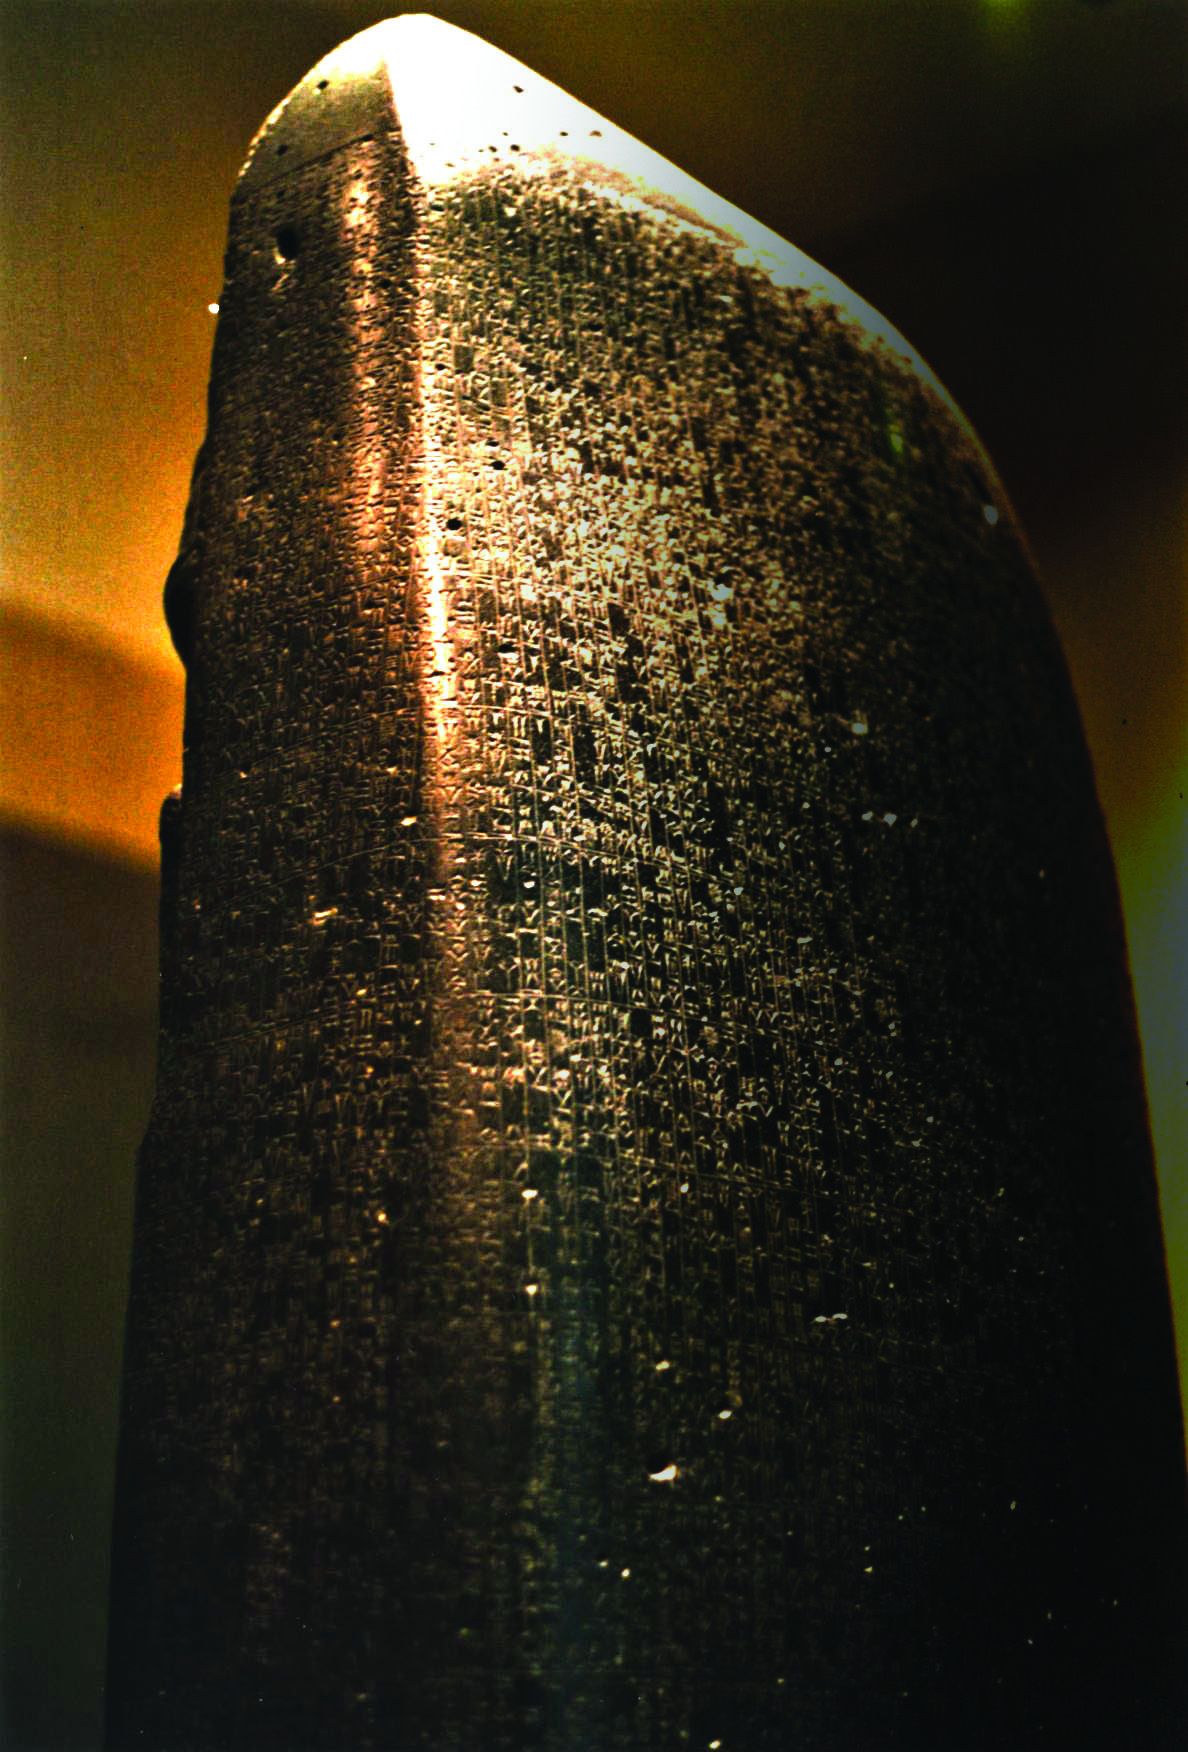 Hammurabi And The Creation Of A Code Of